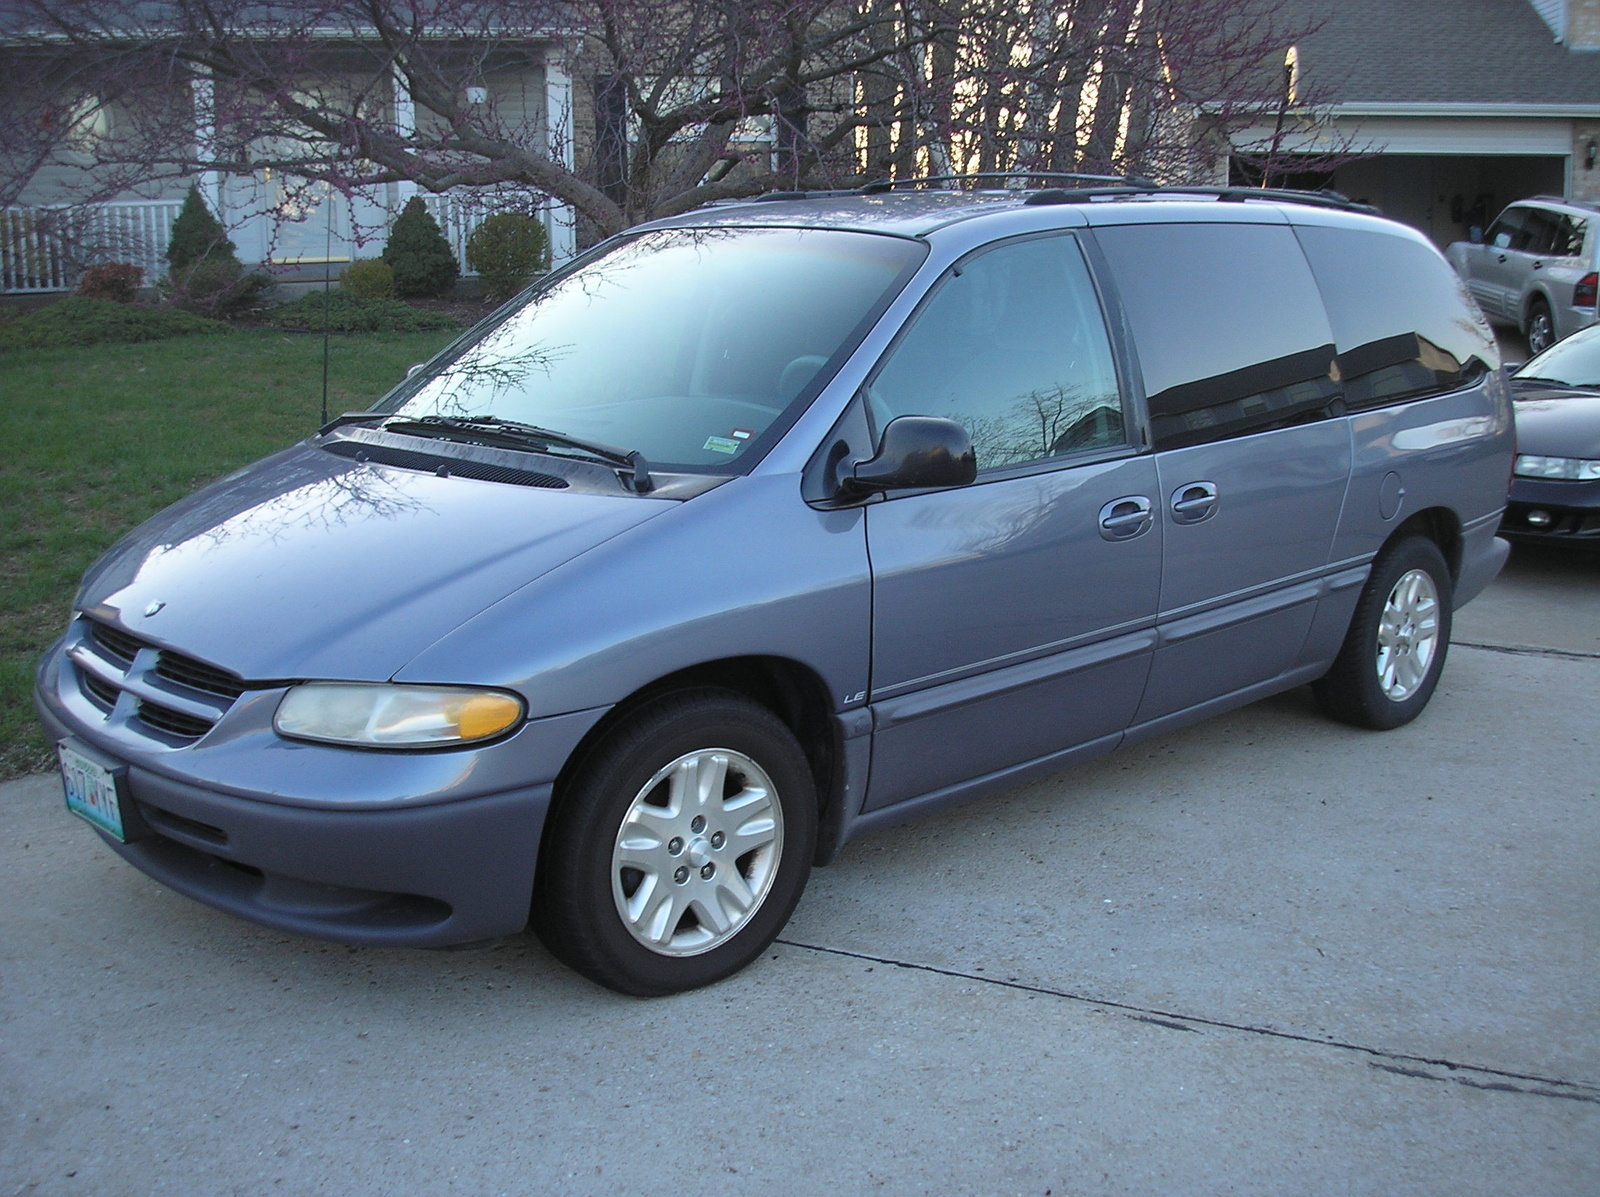 Dodge Caravan Questions 96 Dodge 3 0 Caravan I Want To